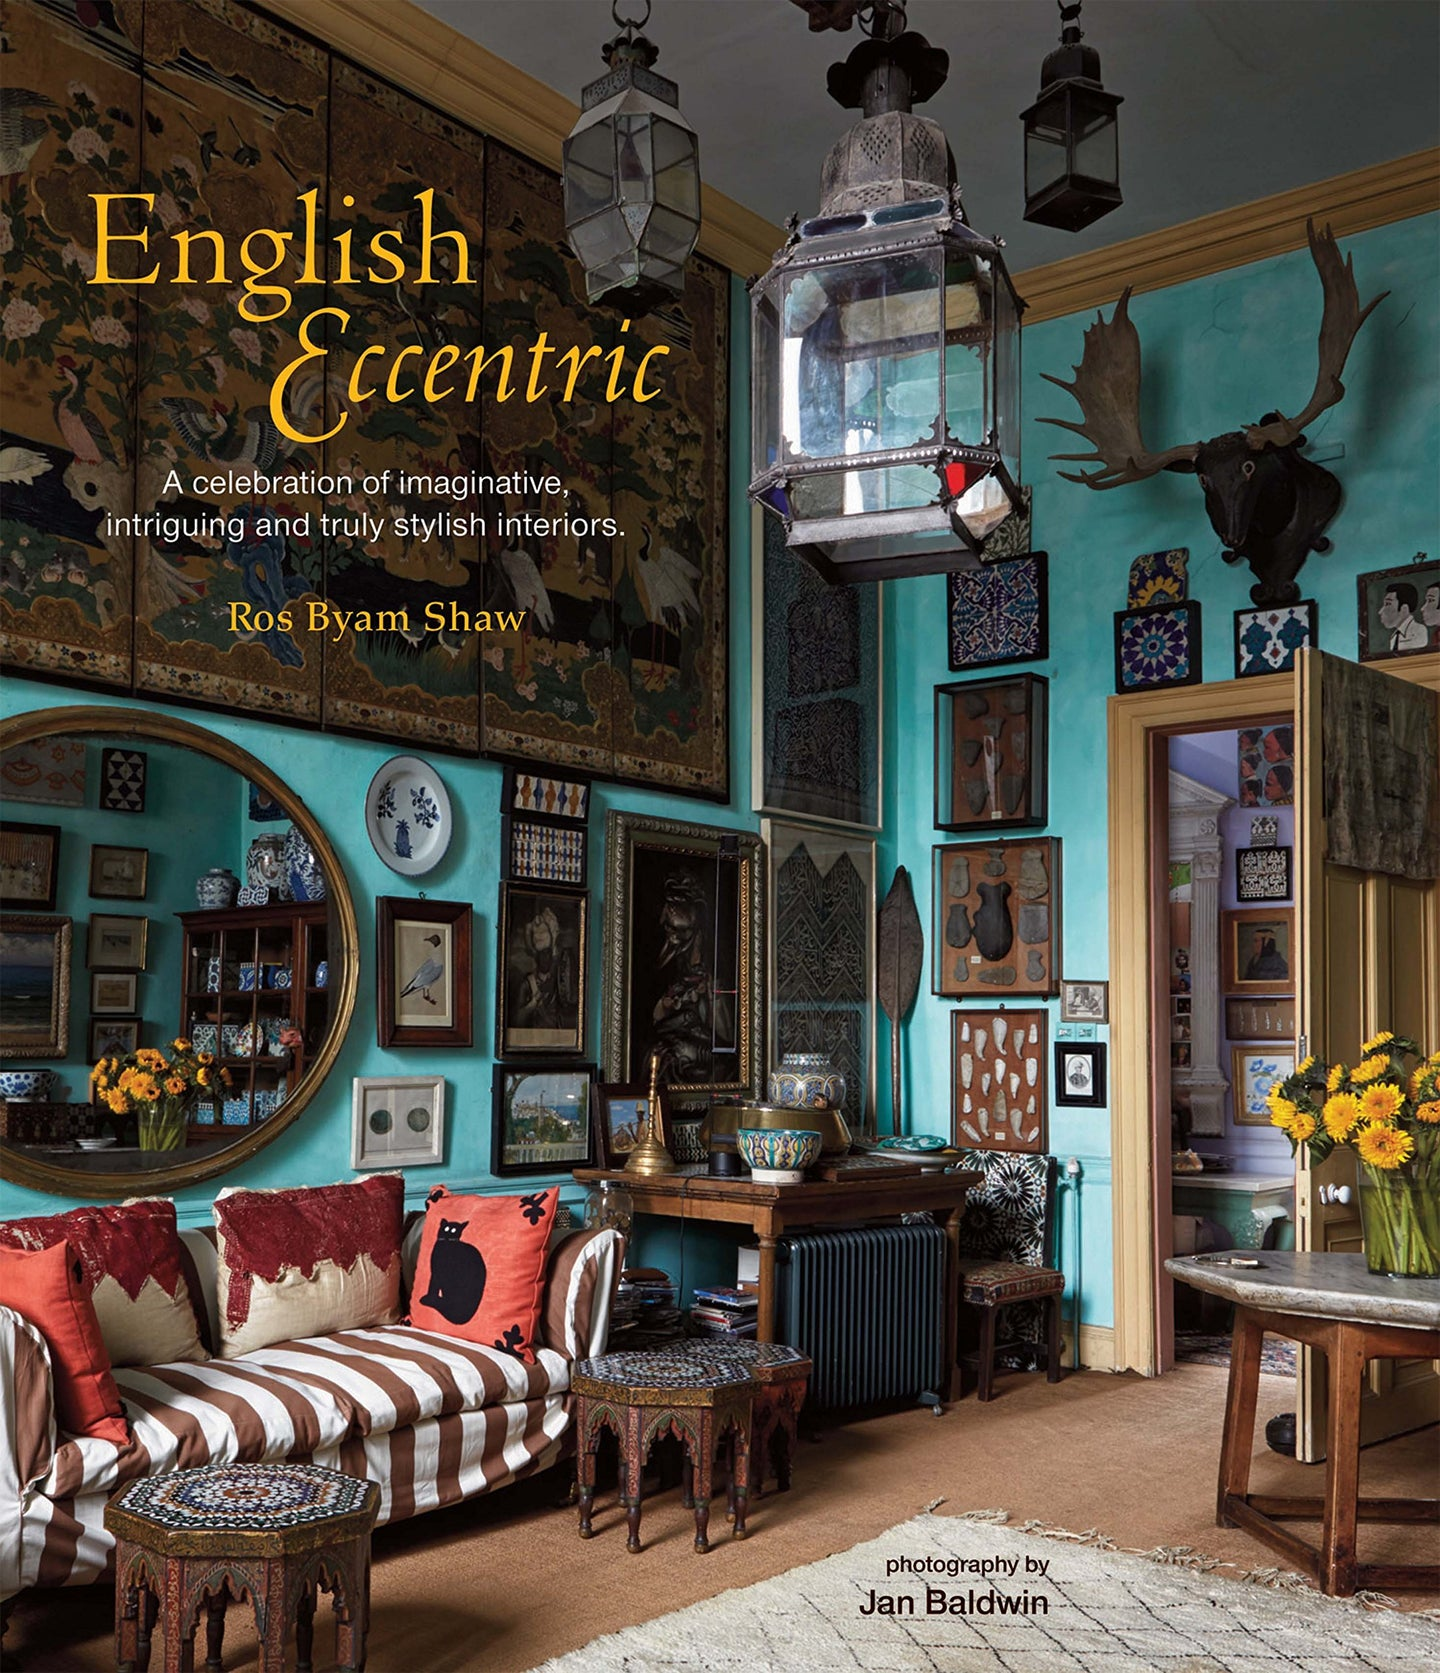 English Eccentric: A celebration of imaginative, intriguing and truly stylish interiors - Ros Byam Shaw